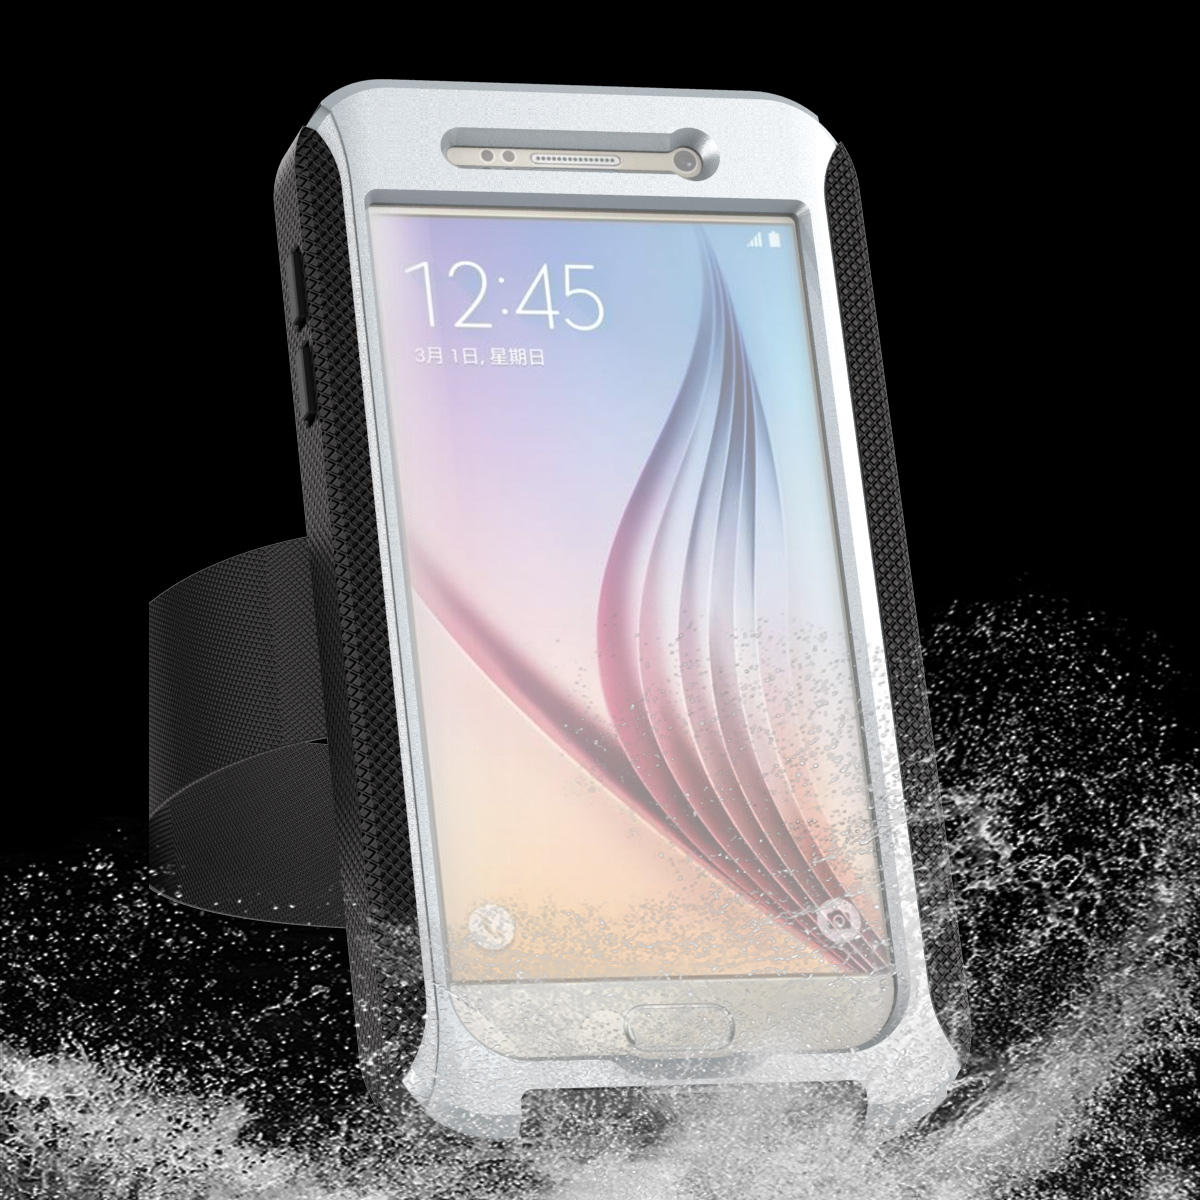 newest 8d72c ea16d AD Series IPX68 Waterproof Heavy Duty Protection Case With Arm Band For  Samsung Galaxy S6